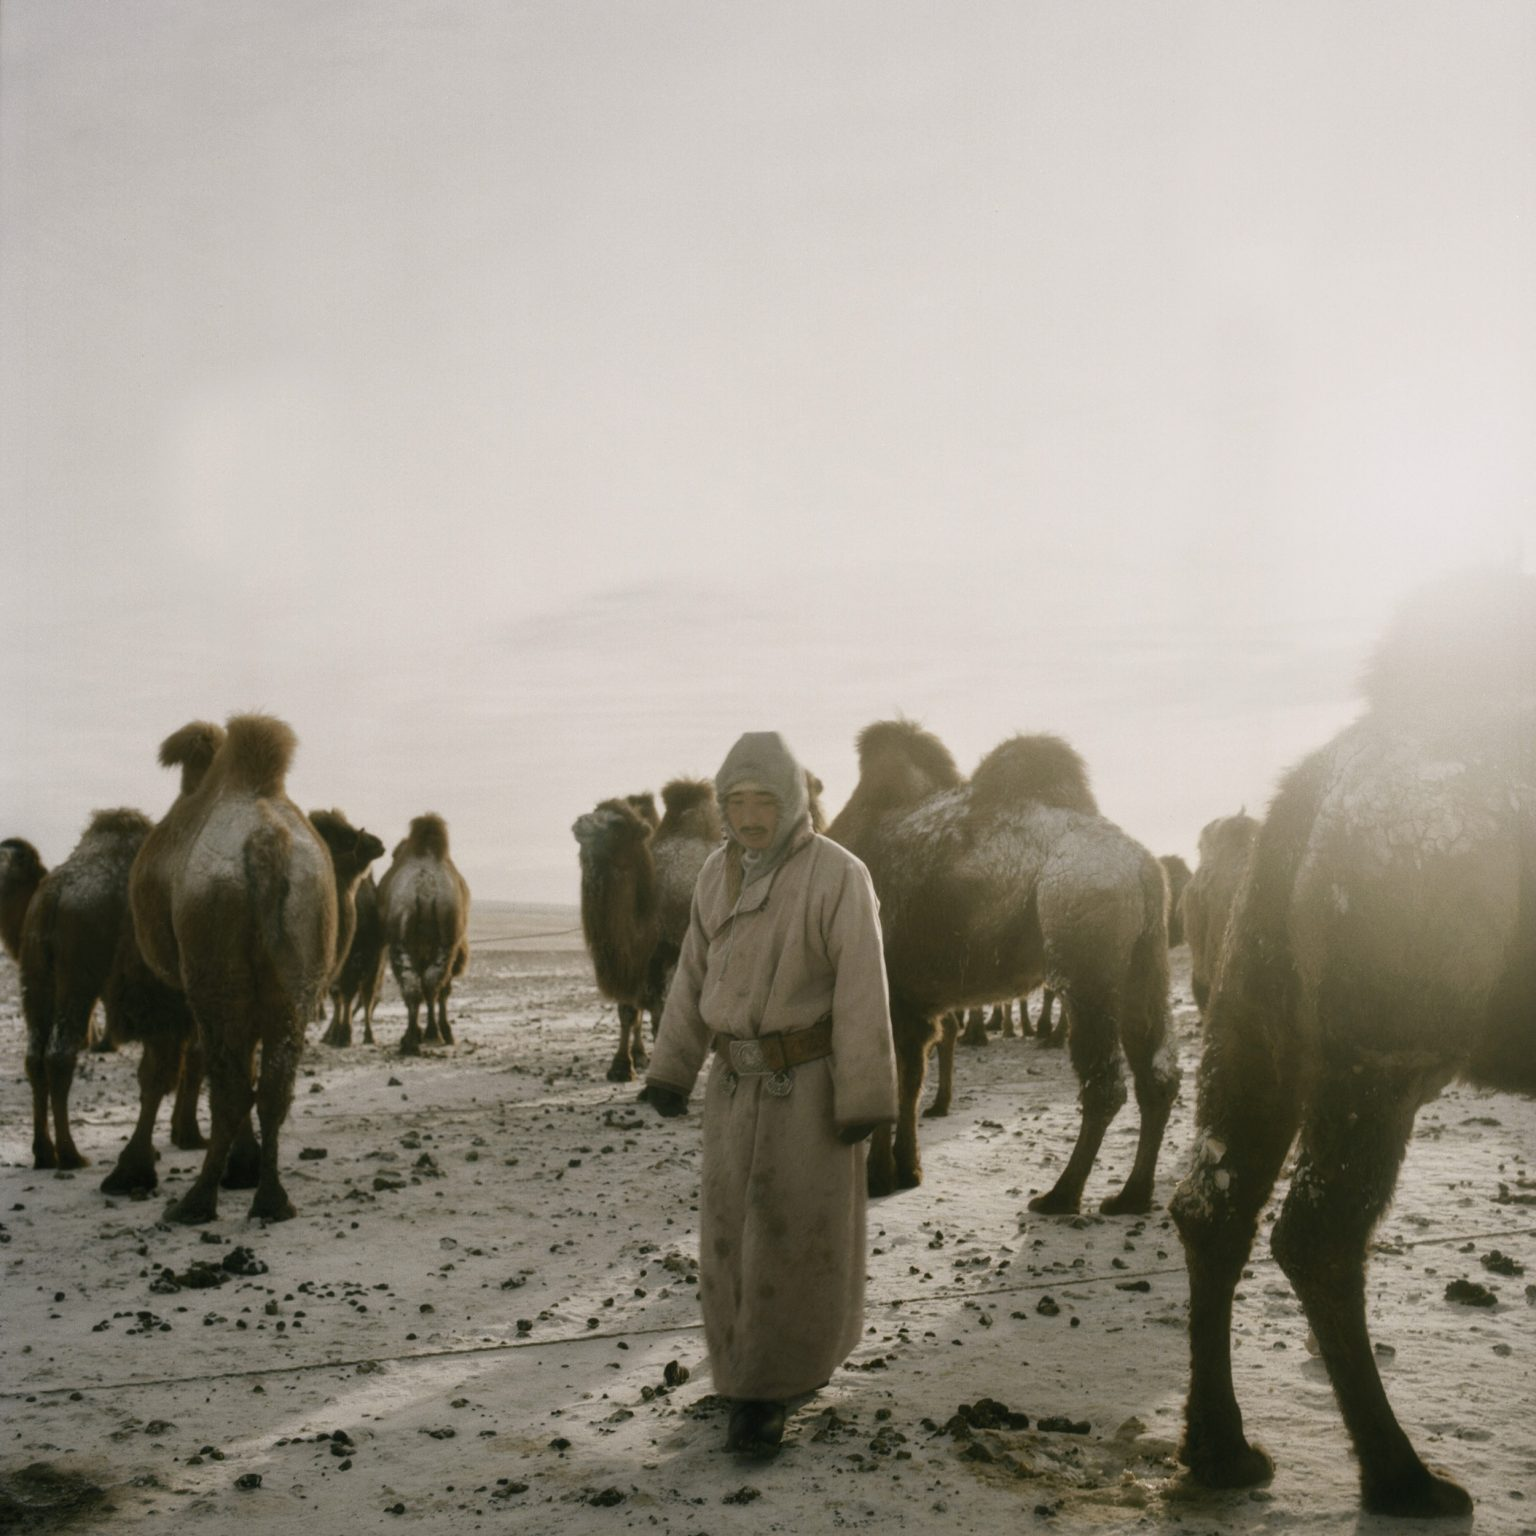 Tuvshinbayar milking the camels before it gets night. The productive life cycle of the nomad families almost totally depends upon the raising and use of camels. Omongov, 2013